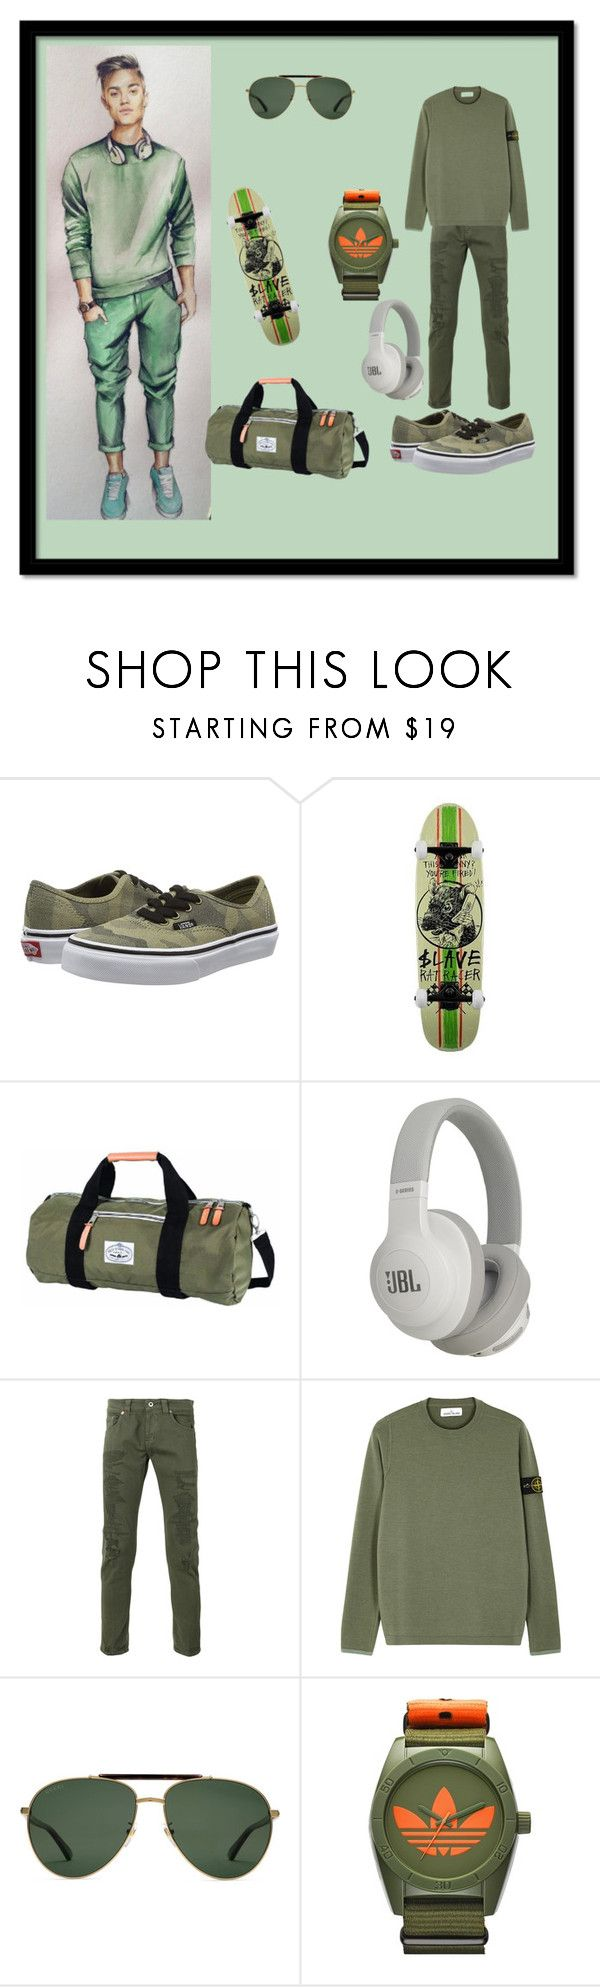 """""""Skate Life"""" by destinystarheaven on Polyvore featuring Vans, Poler, JBL, Dondup, STONE ISLAND, Gucci, adidas, men's fashion and menswear"""